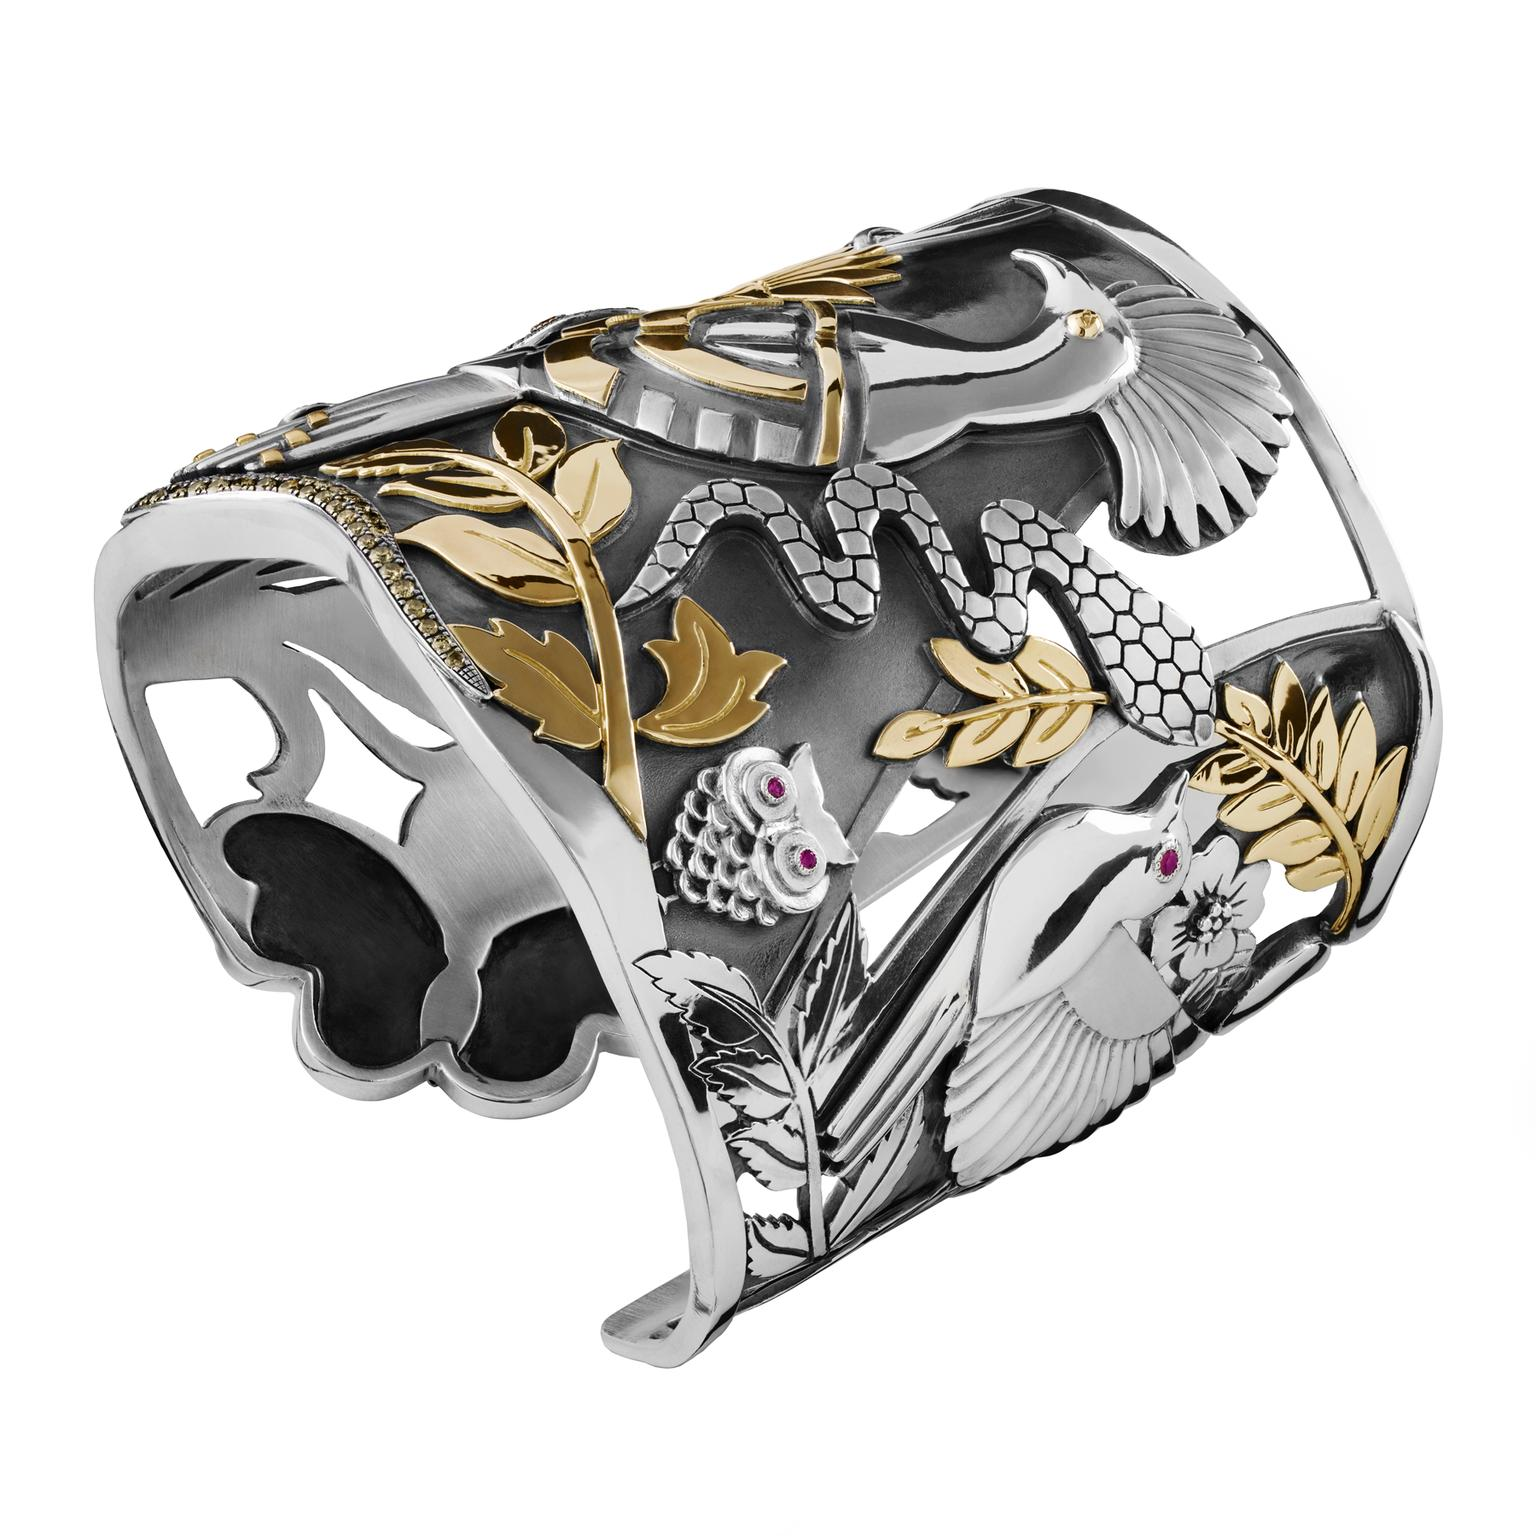 Azza Fahmy Wonders of Nature Hoopoe cuff with rubies and champagne diamonds